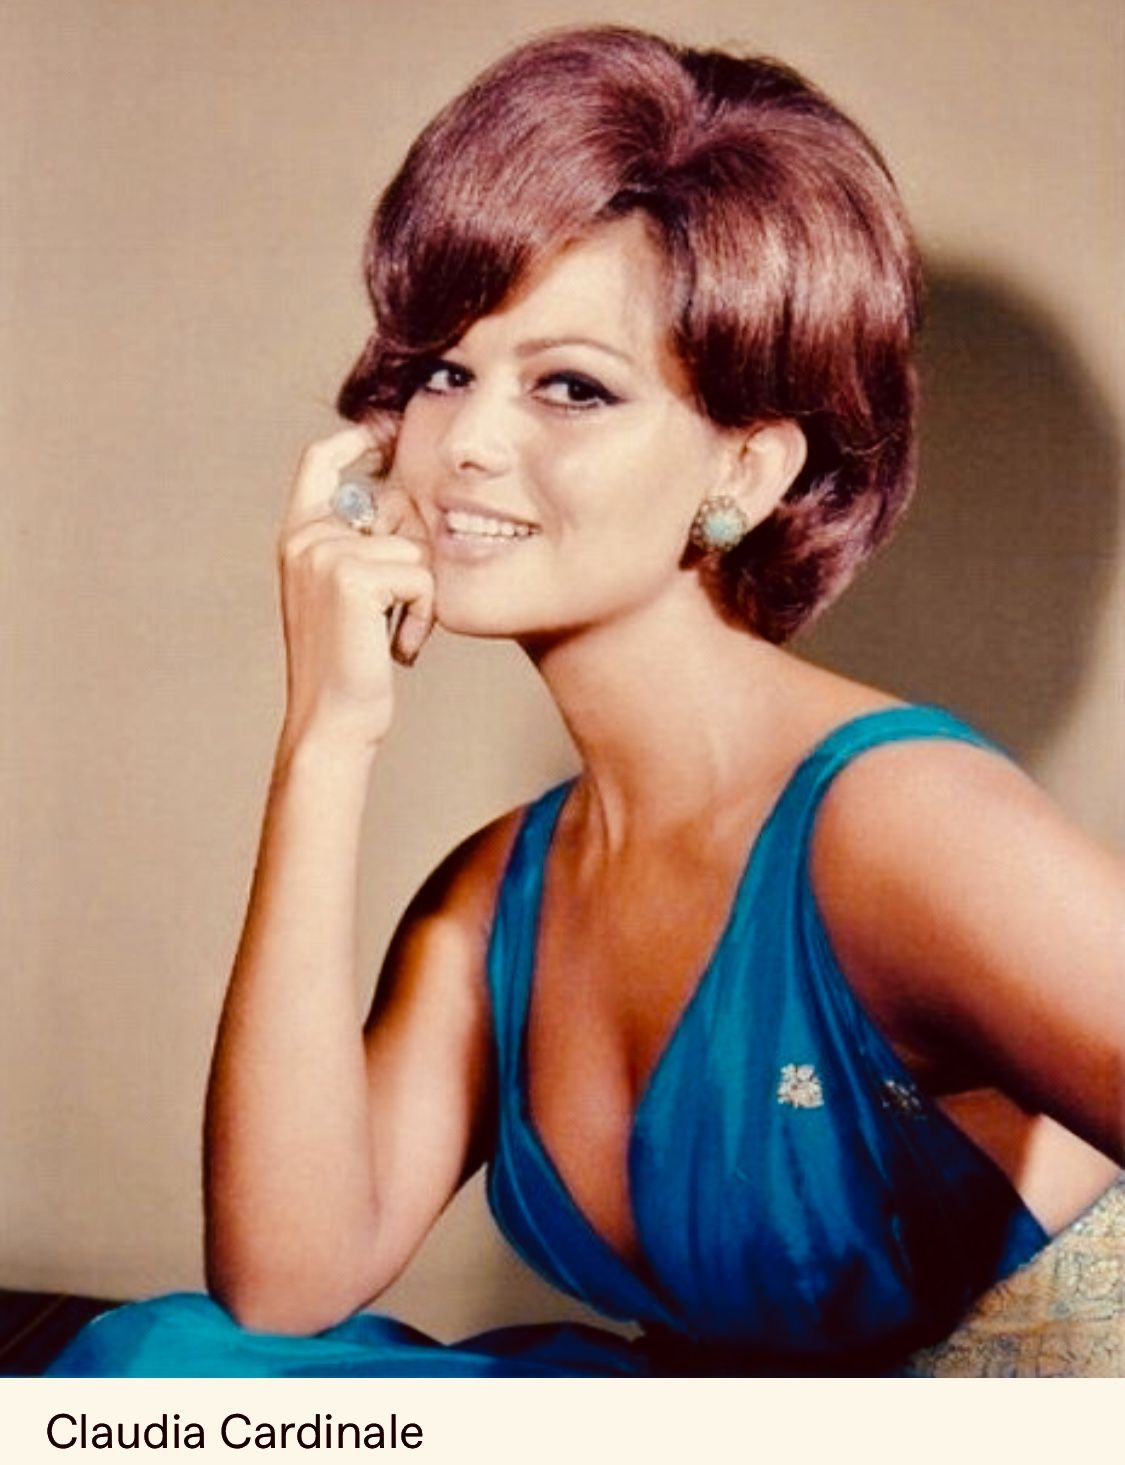 Pin By Graham Conway On Pretty Women Beauty Girl Claudia Cardinale Italian Actress